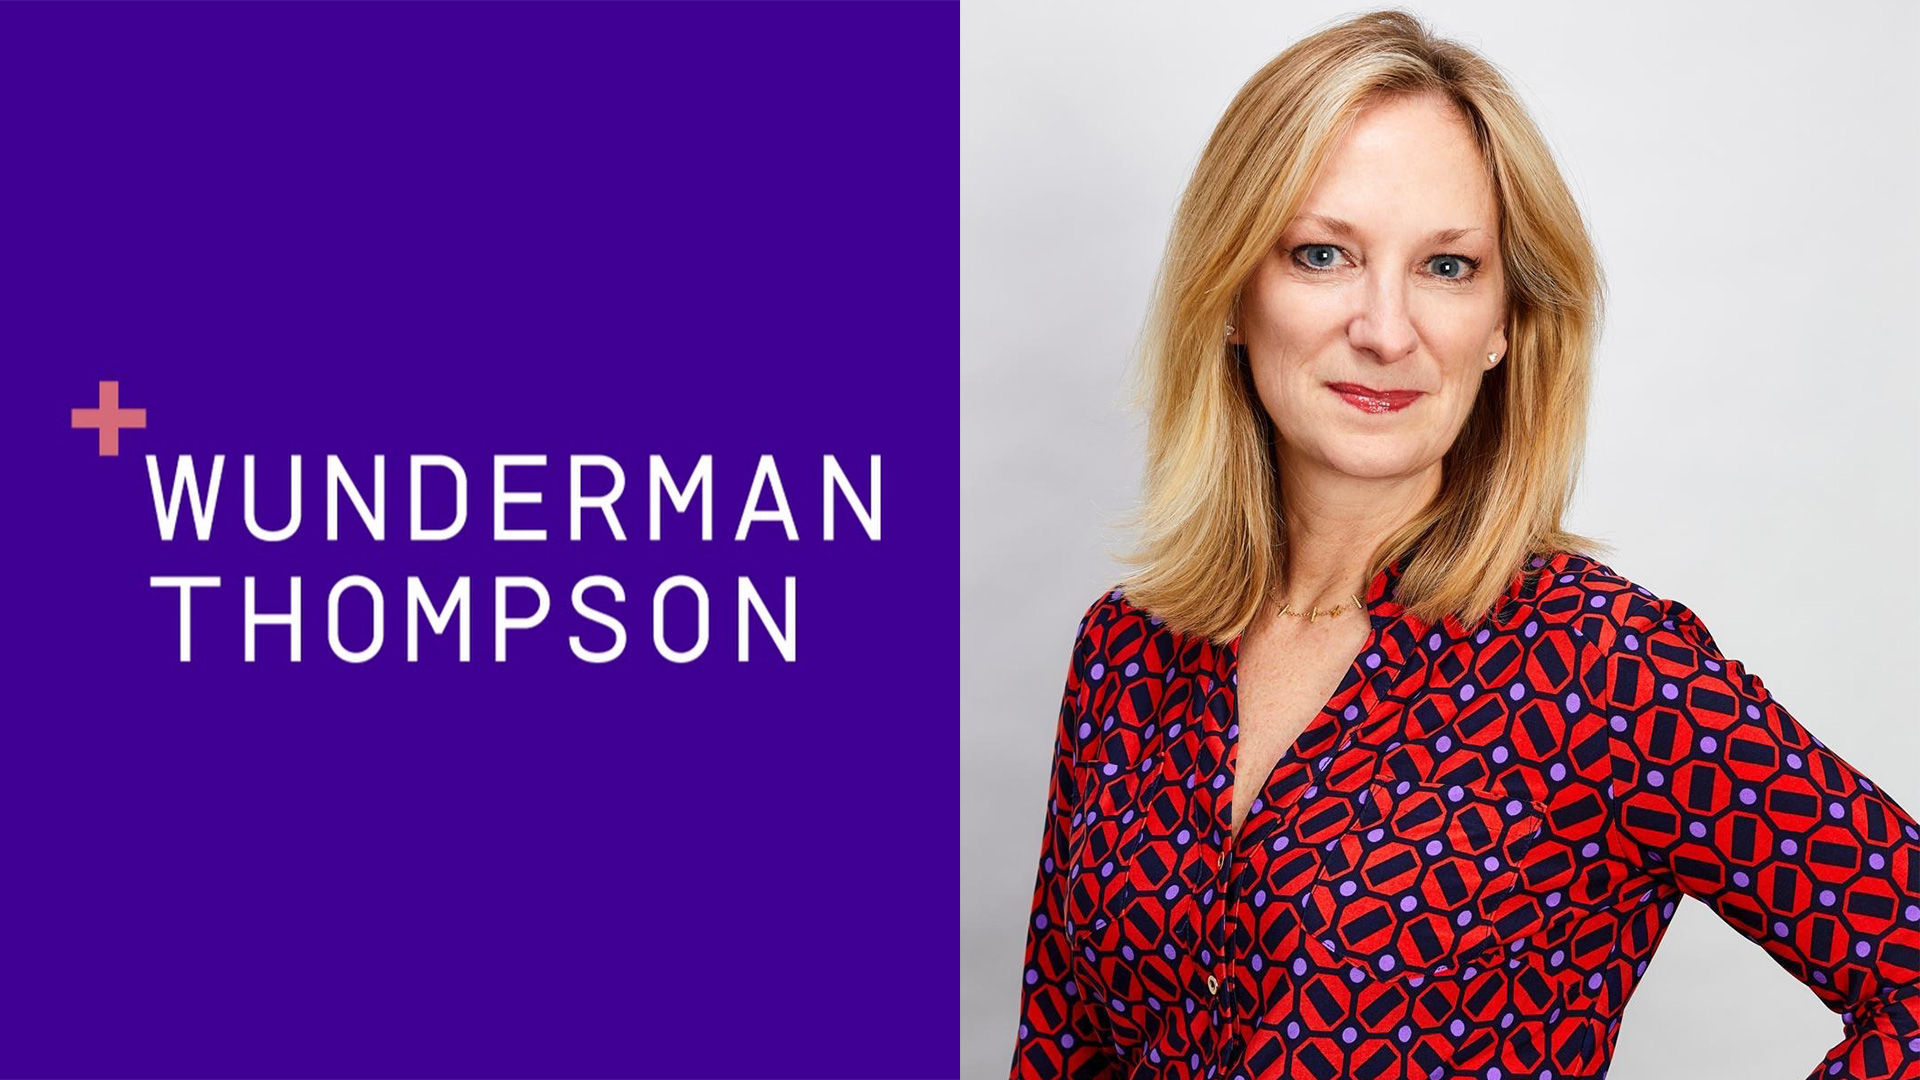 Wunderman Thompson hired Audrey Melofchik to lead its New York office as it integrates its health practice.